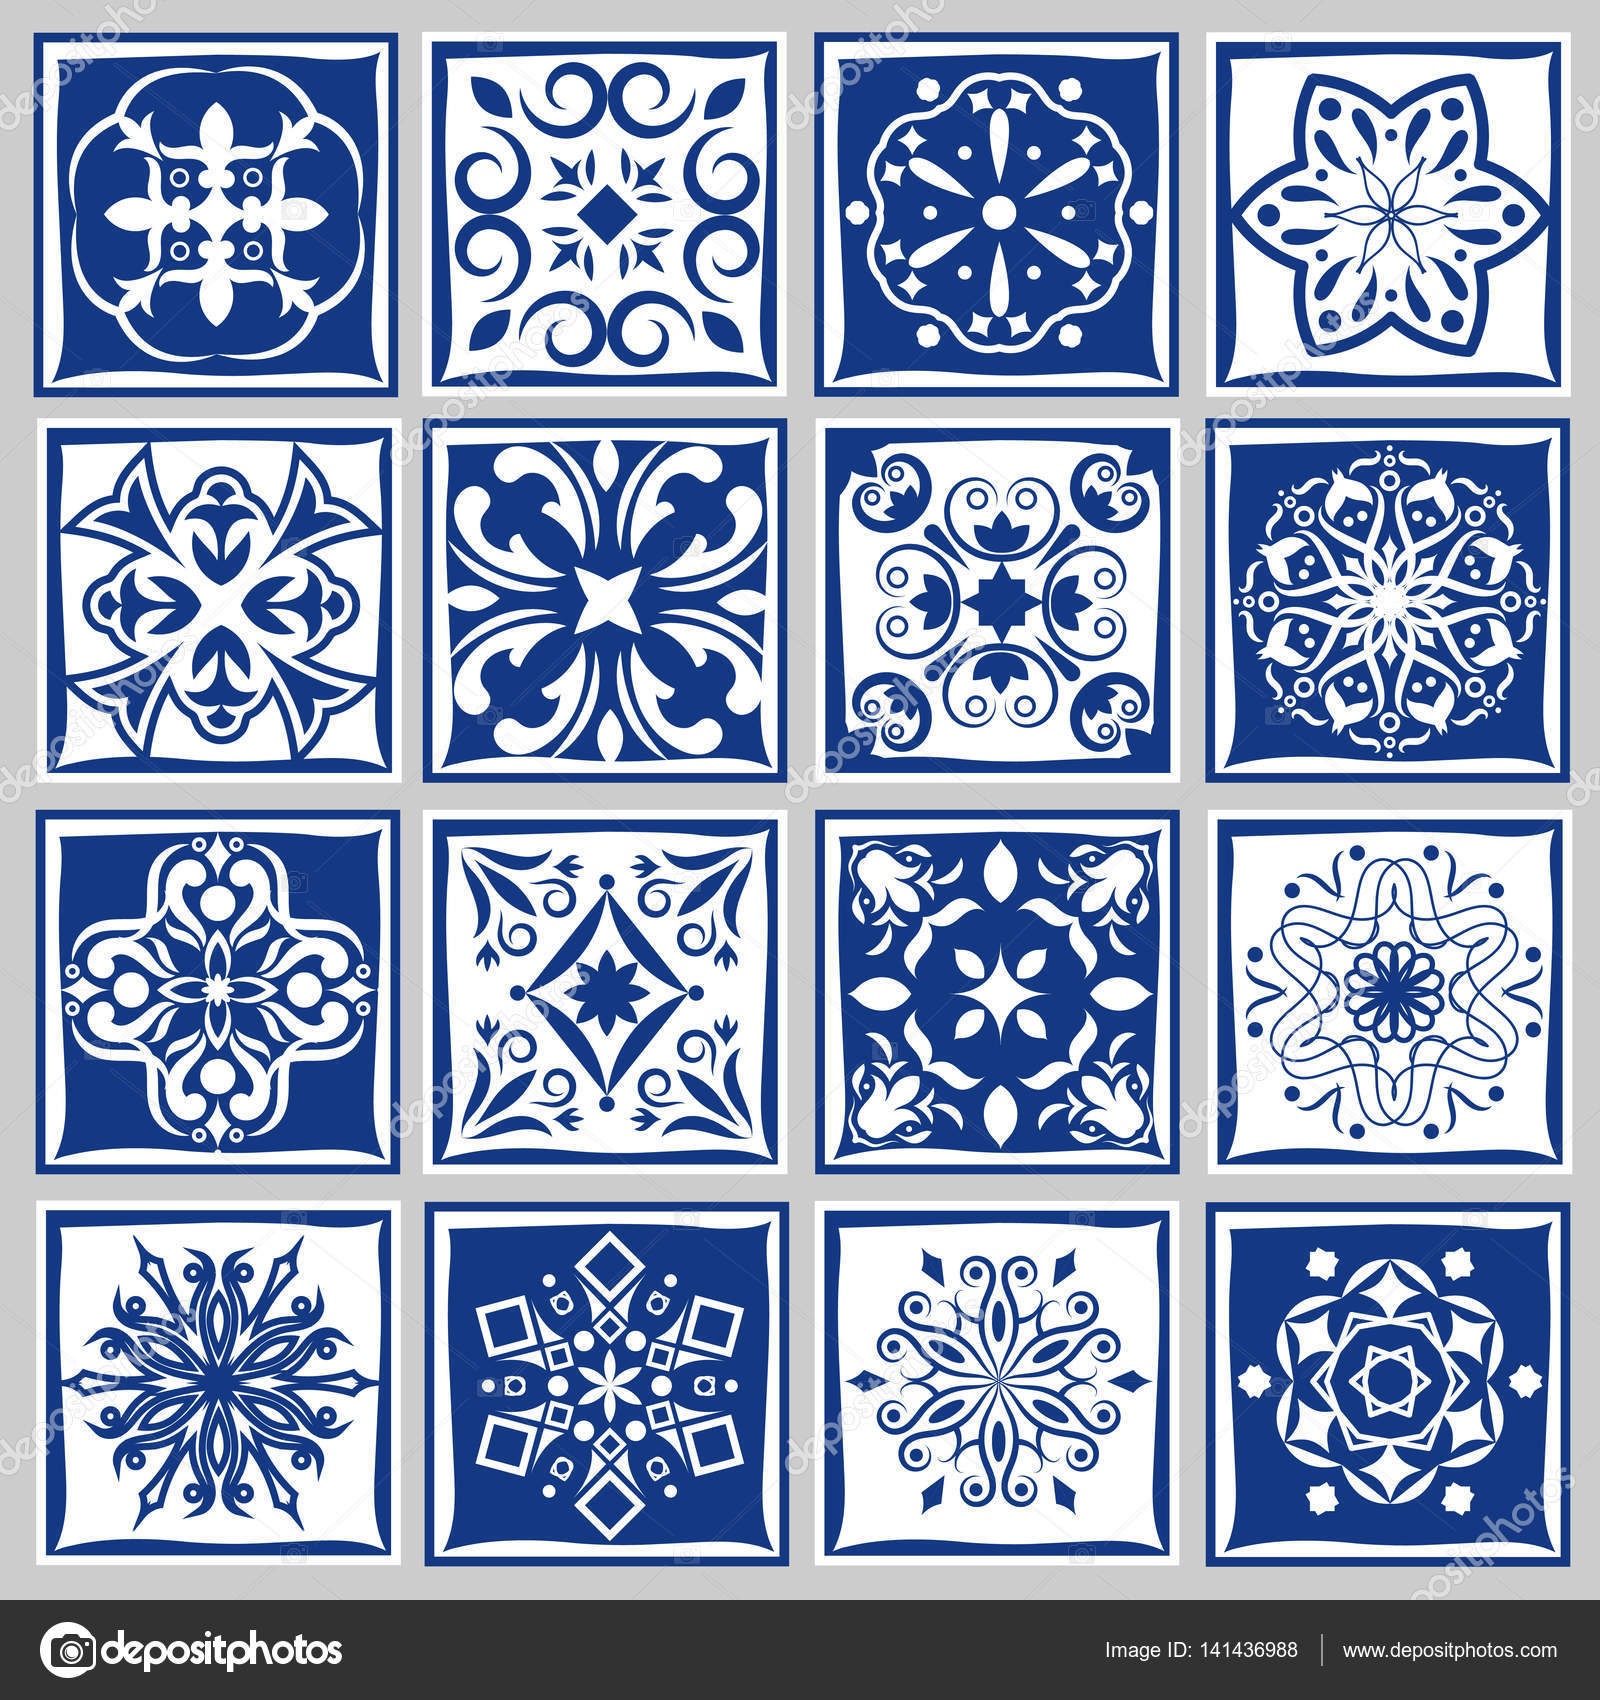 Tile patterns with flowers for bath or kitchen. Floral tiles motif ...